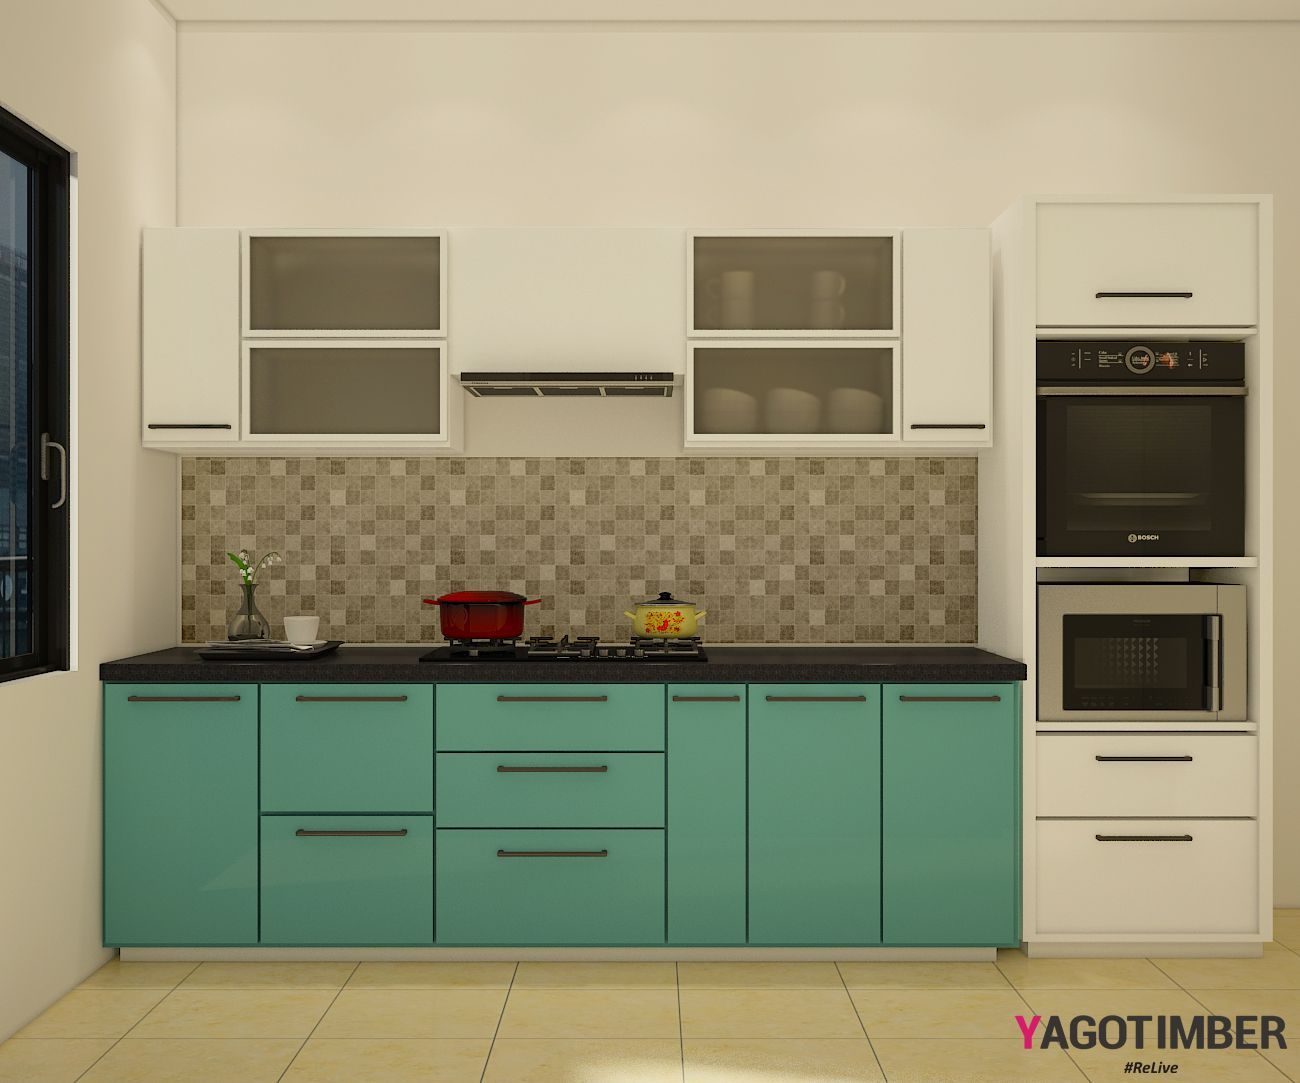 Short With Space Don T Worry Yagotimber Got The Most Trending Minimalist Kitchen Designs For You Vi Kitchen Design Small Kitchen Design Small Modern Kitchens